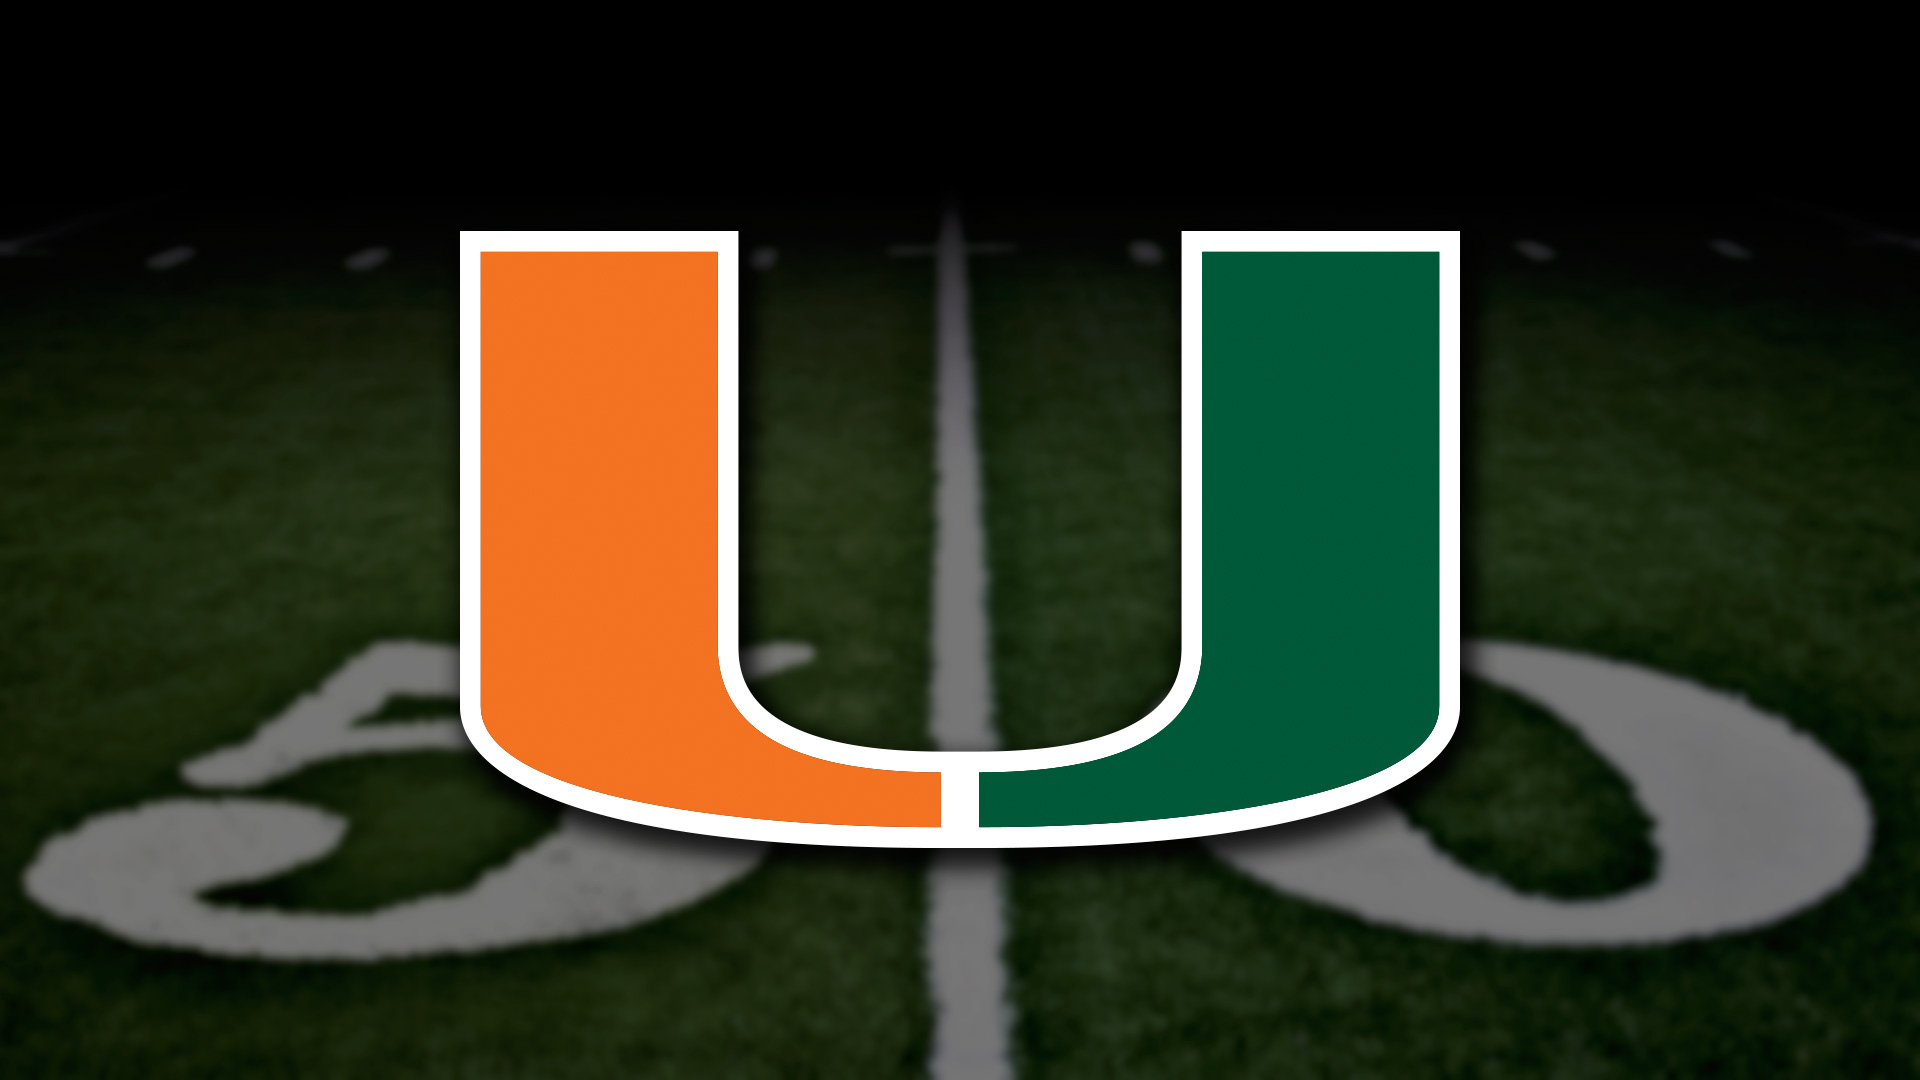 University of Miami fan, officer altercation now under investigation by police